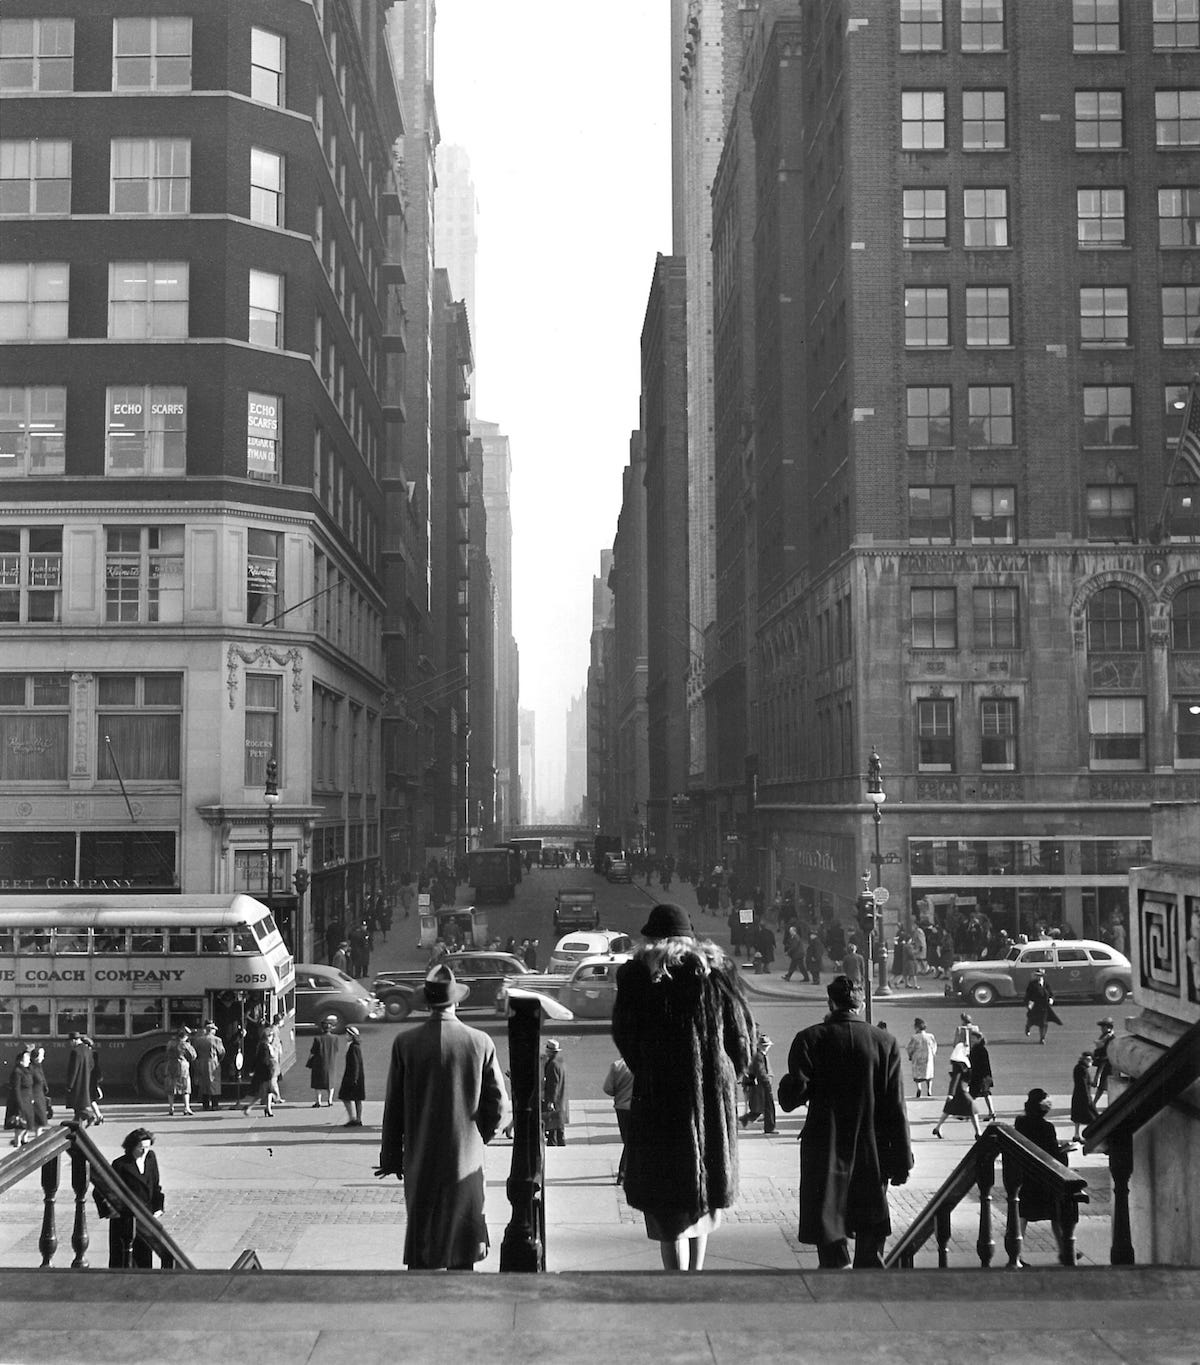 New York in the 1940s by Ida Wyman